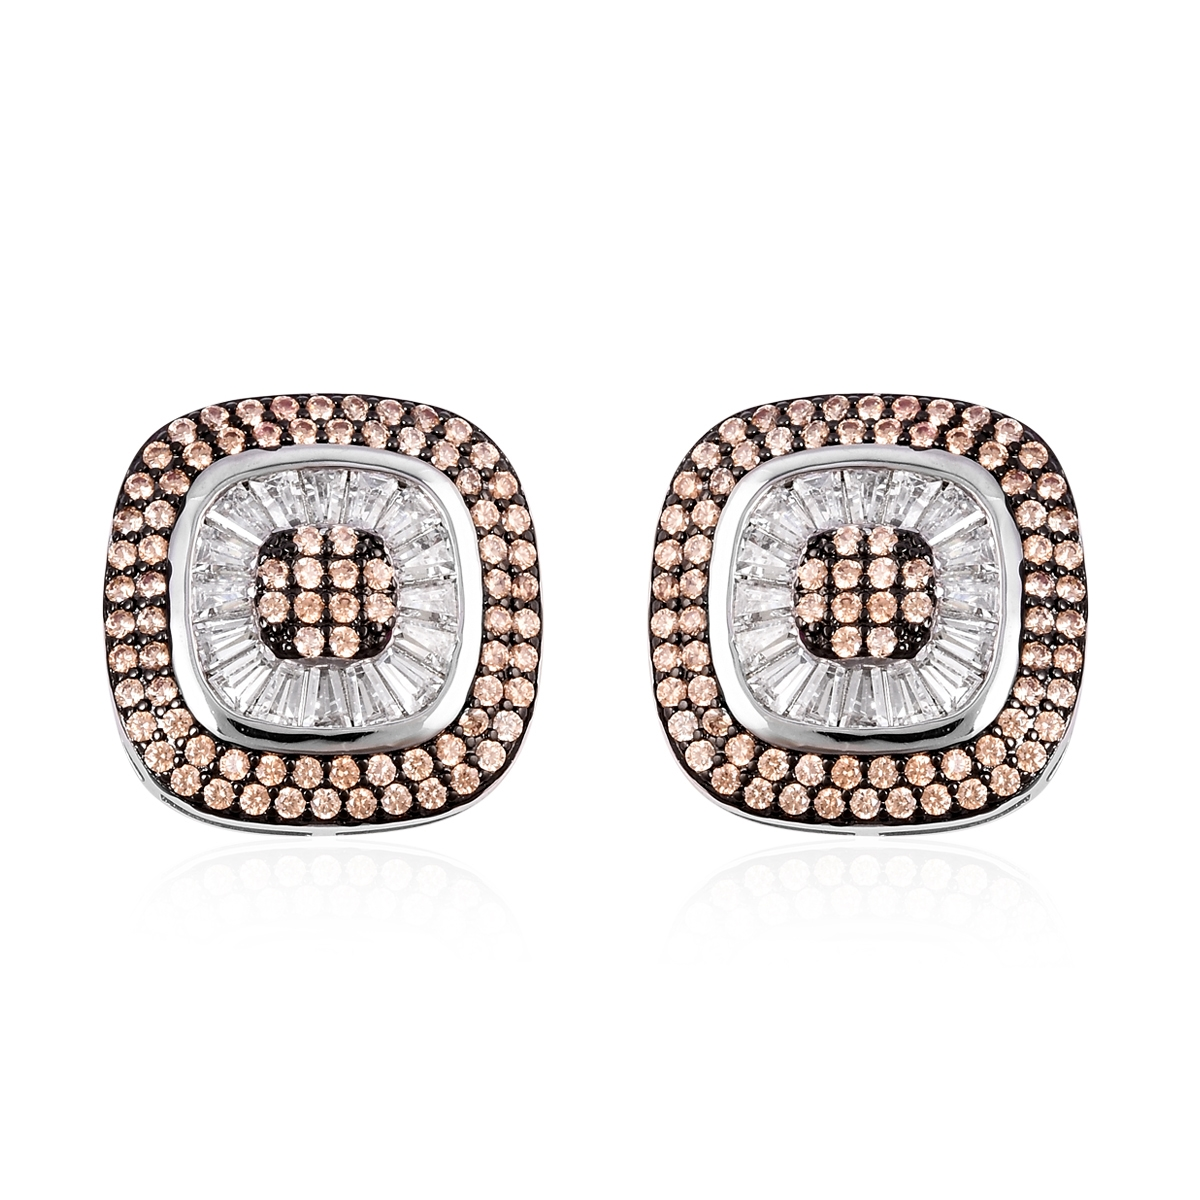 Champagne and White CZ Doultone Stud Earrings 4.71 ctw